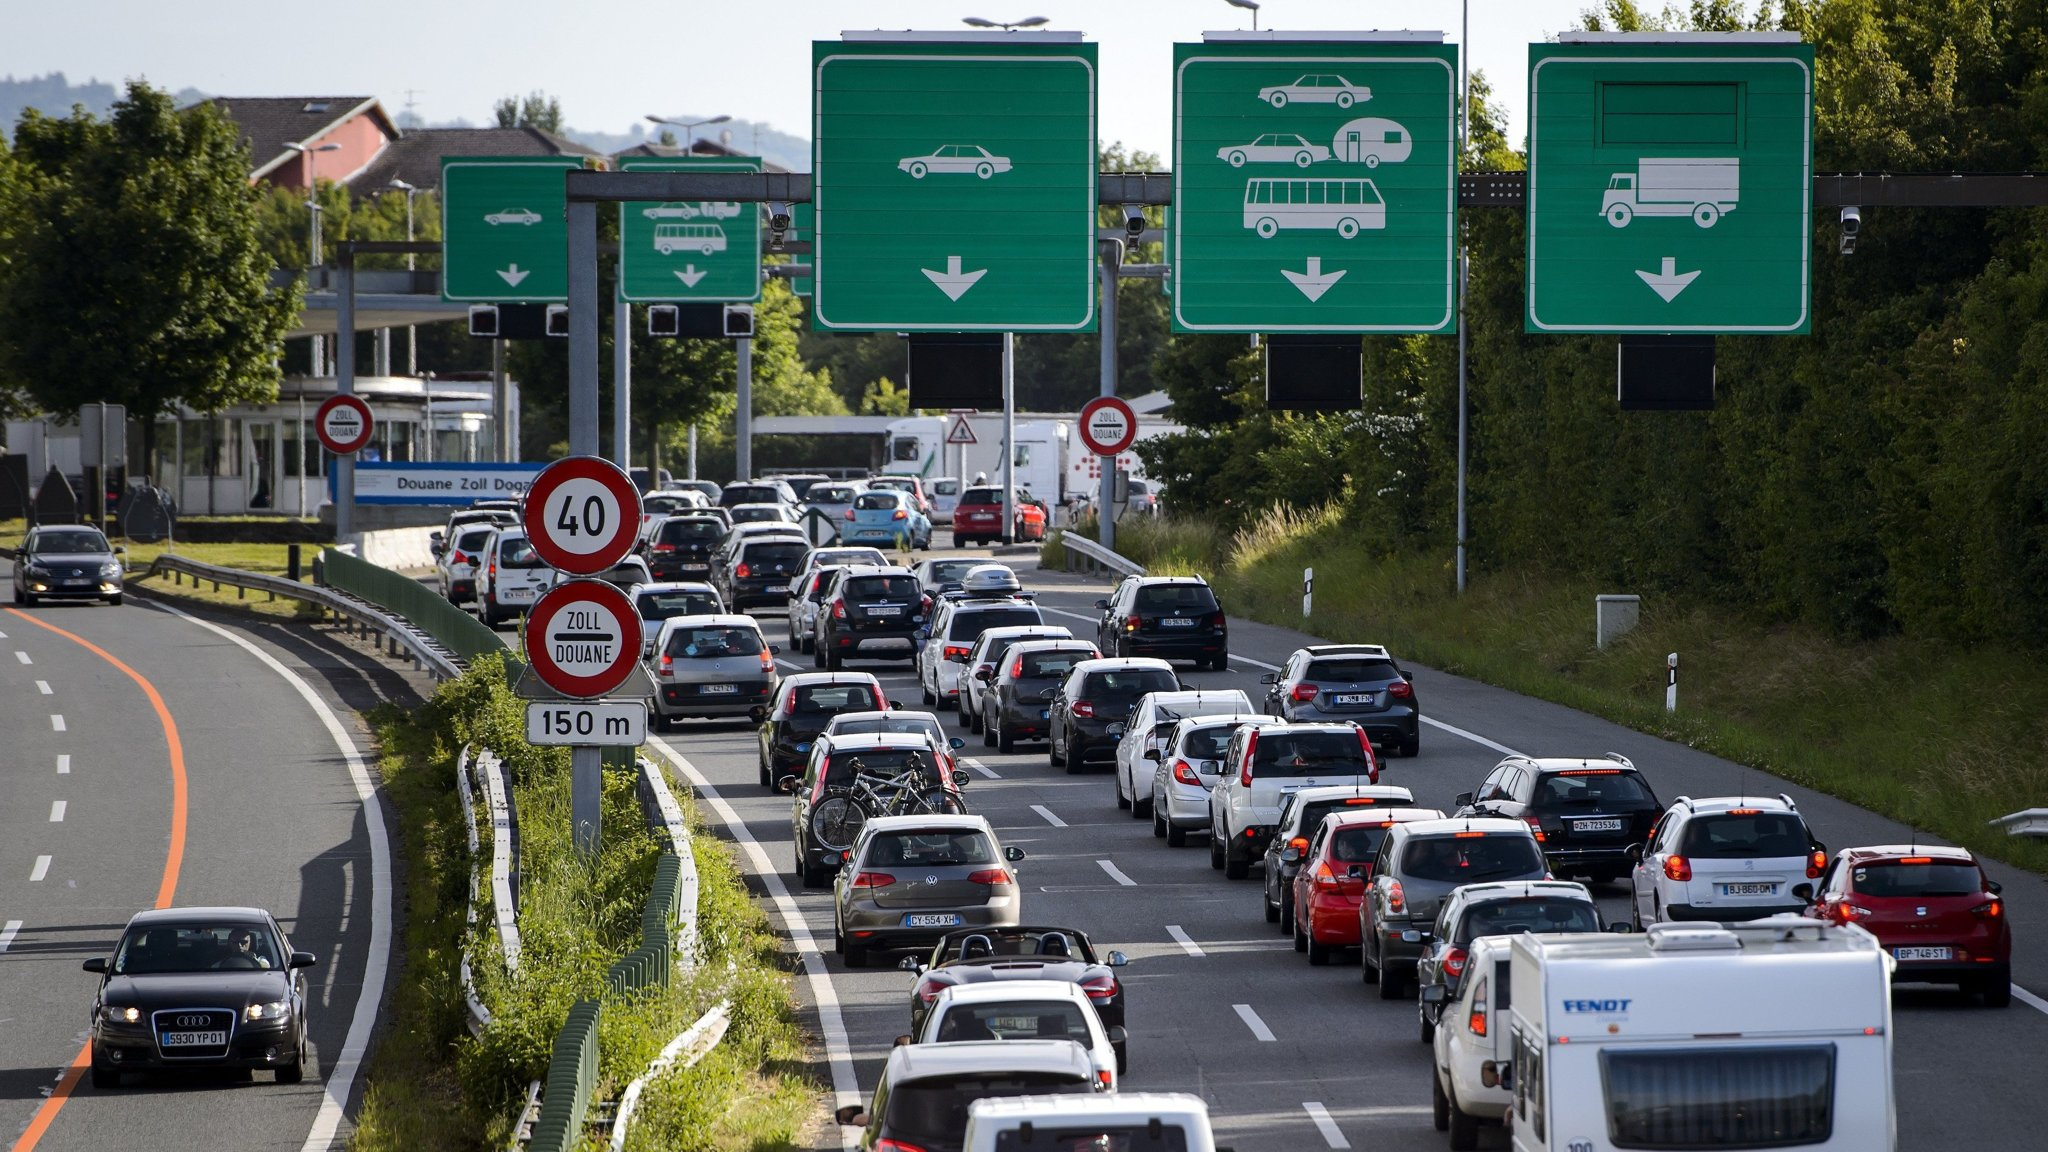 Brexit Watch The Swiss Border For A Warning On Trade Financial Times